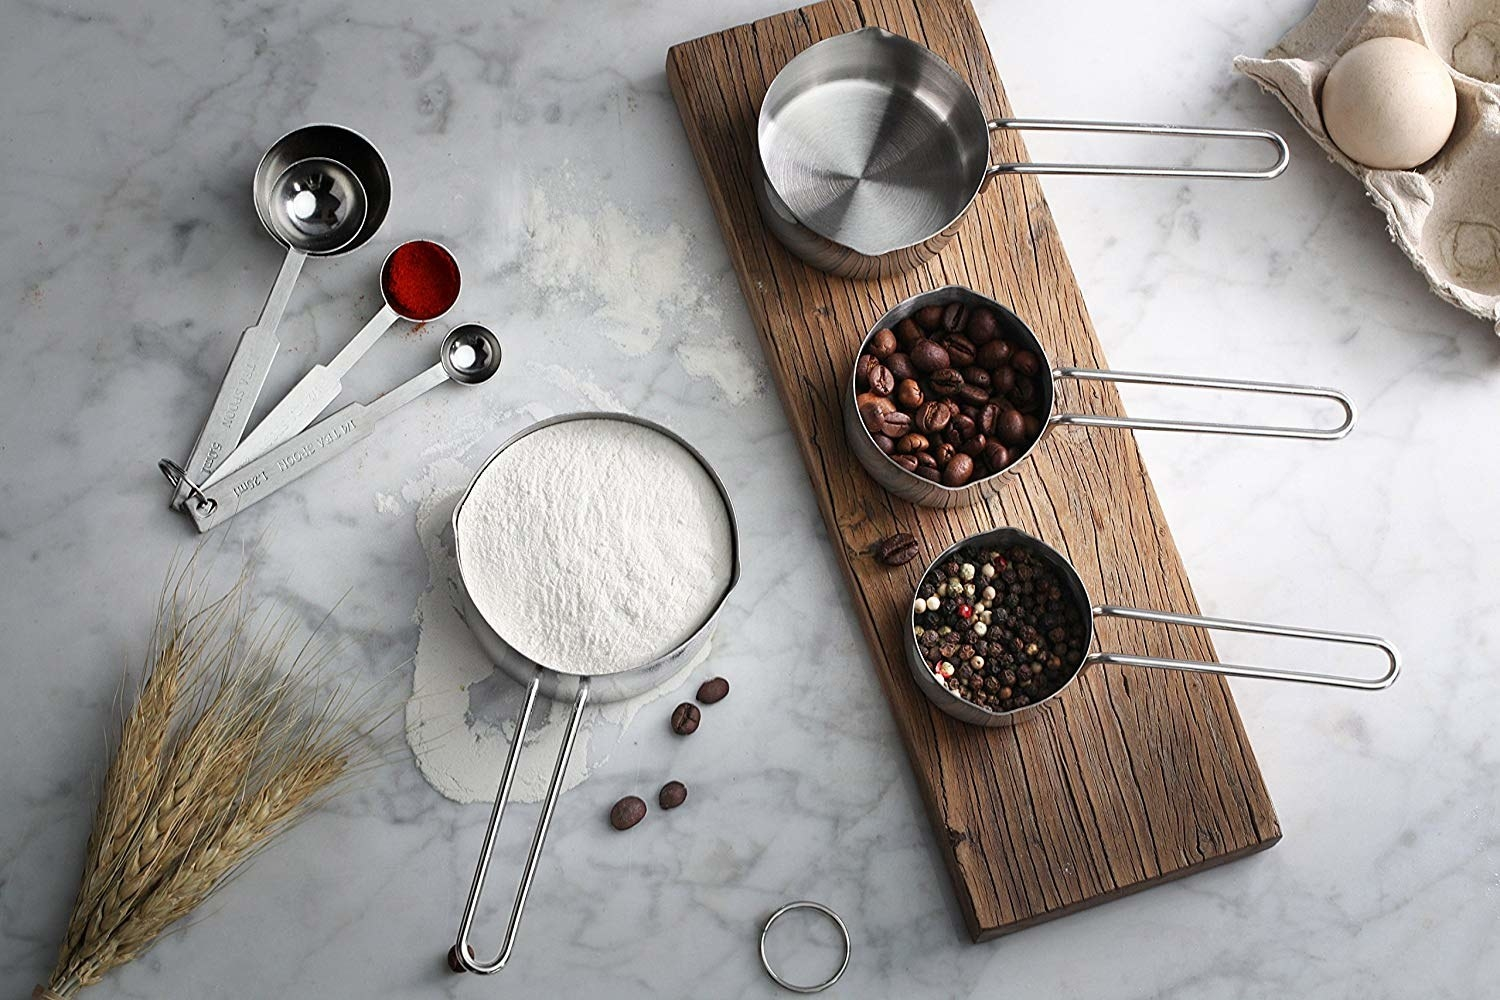 The various measuring cups and spoons holding dry ingredients